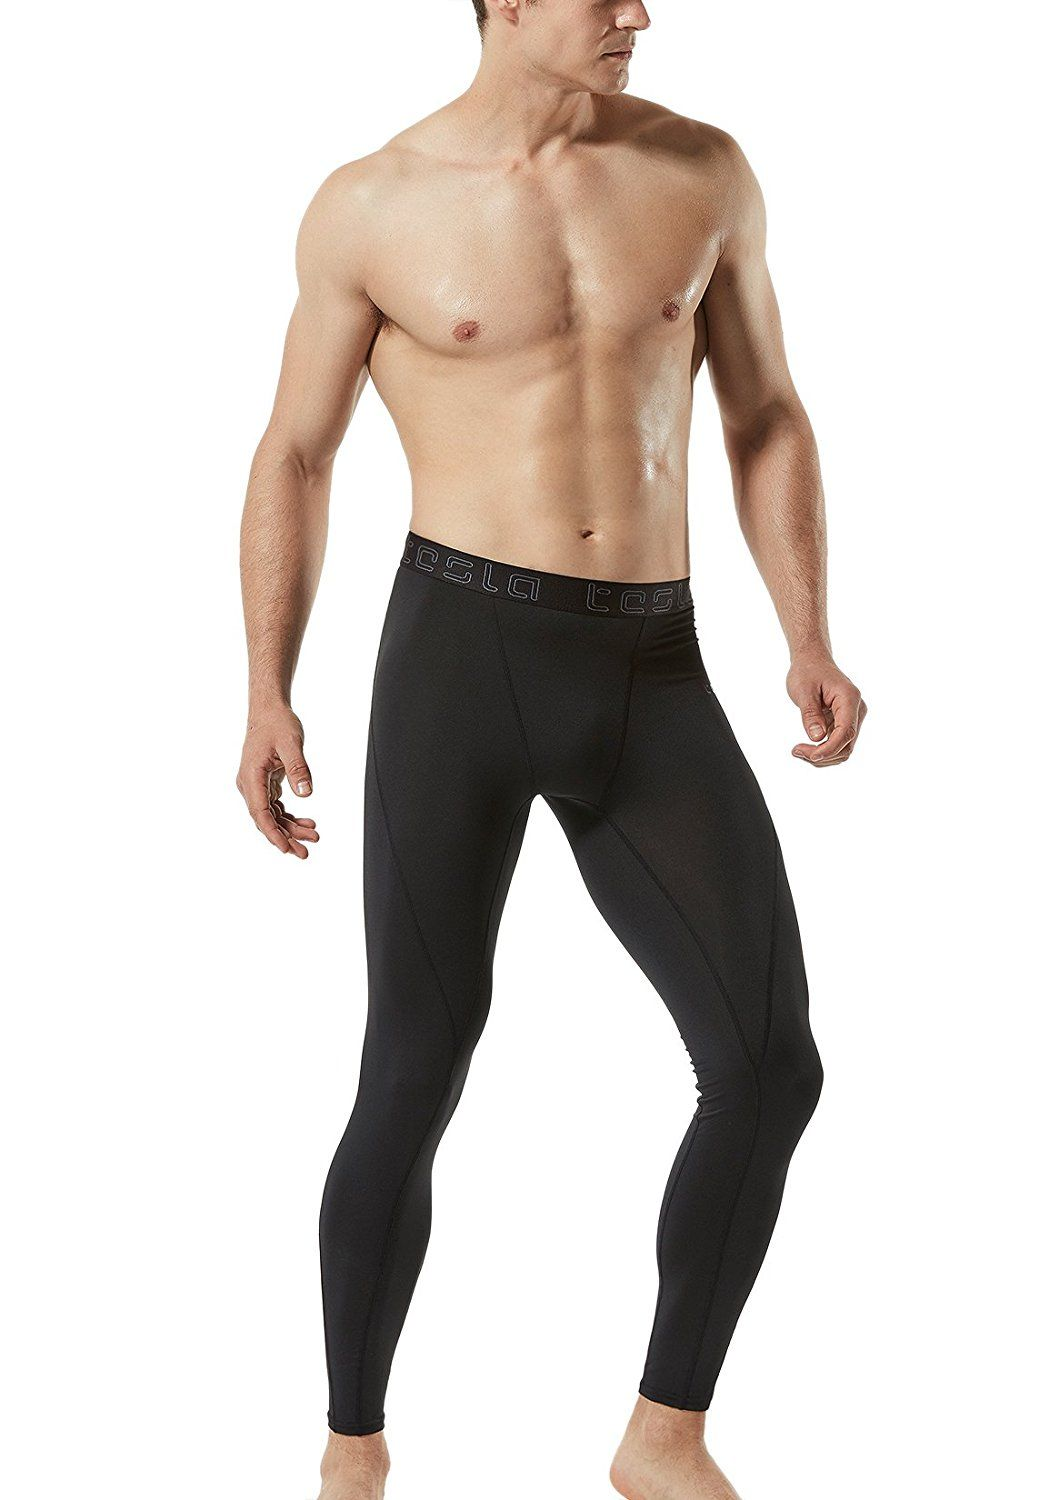 8a5915b717fa4 Tesla Men's Compression Pants Baselayer Cool Dry Sports Tights Leggings  MUP19 / MUP09 / P16 *** Click image to review more details.